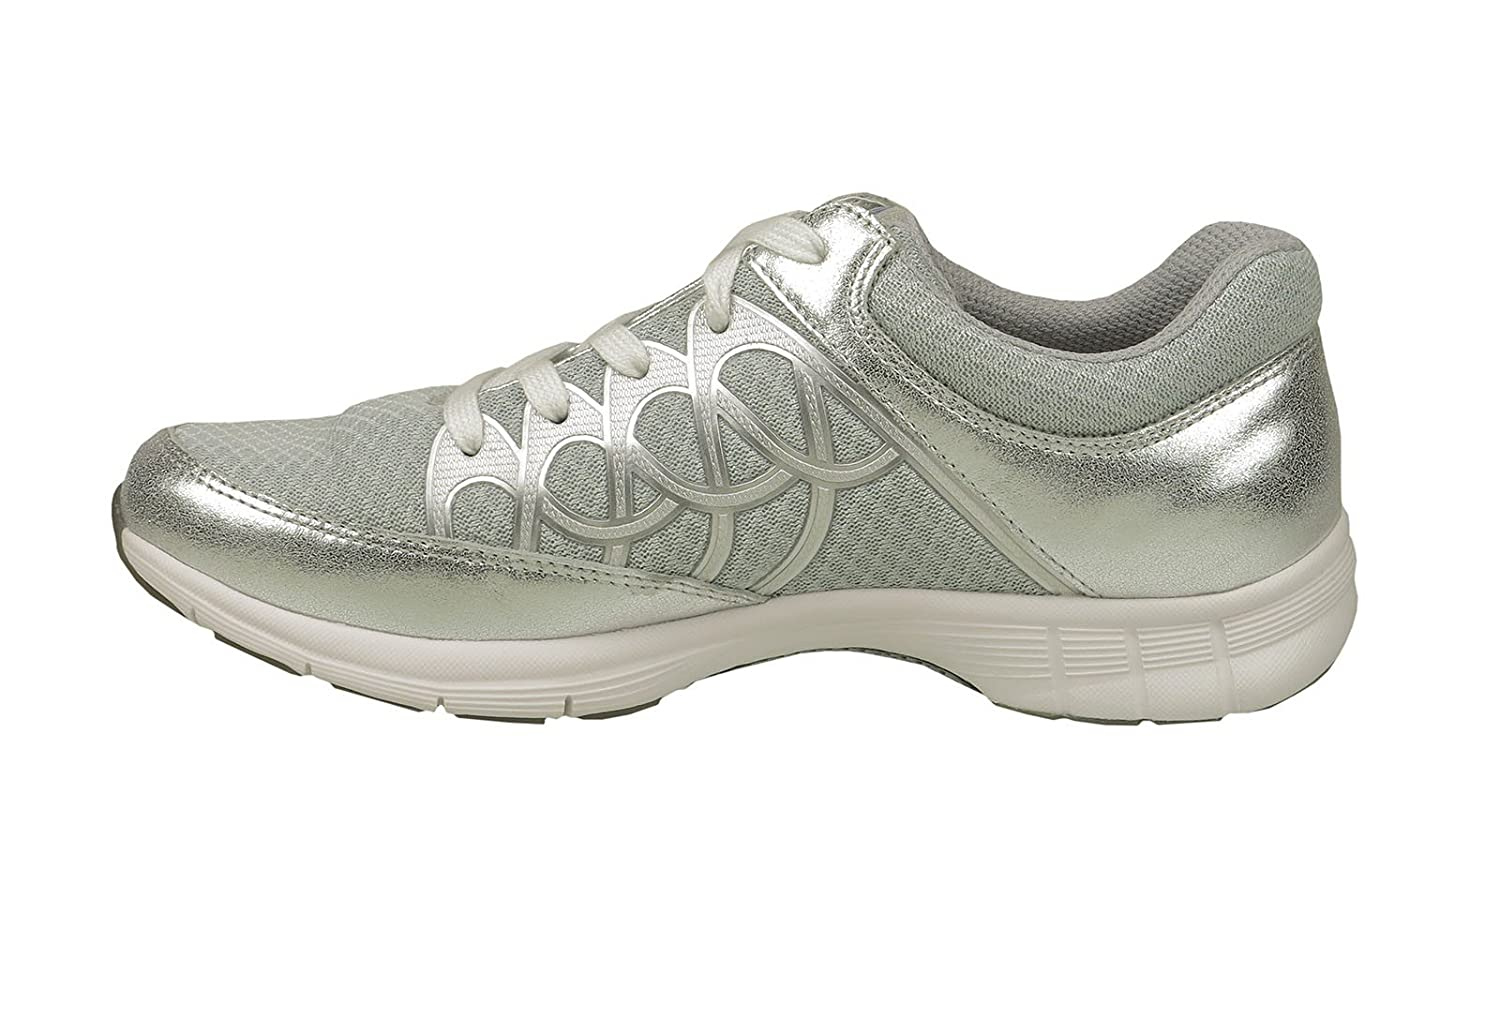 Gabor Schuhes Schuhes Schuhes AG 64.350.43 Gray/Ice/Silber b7c516